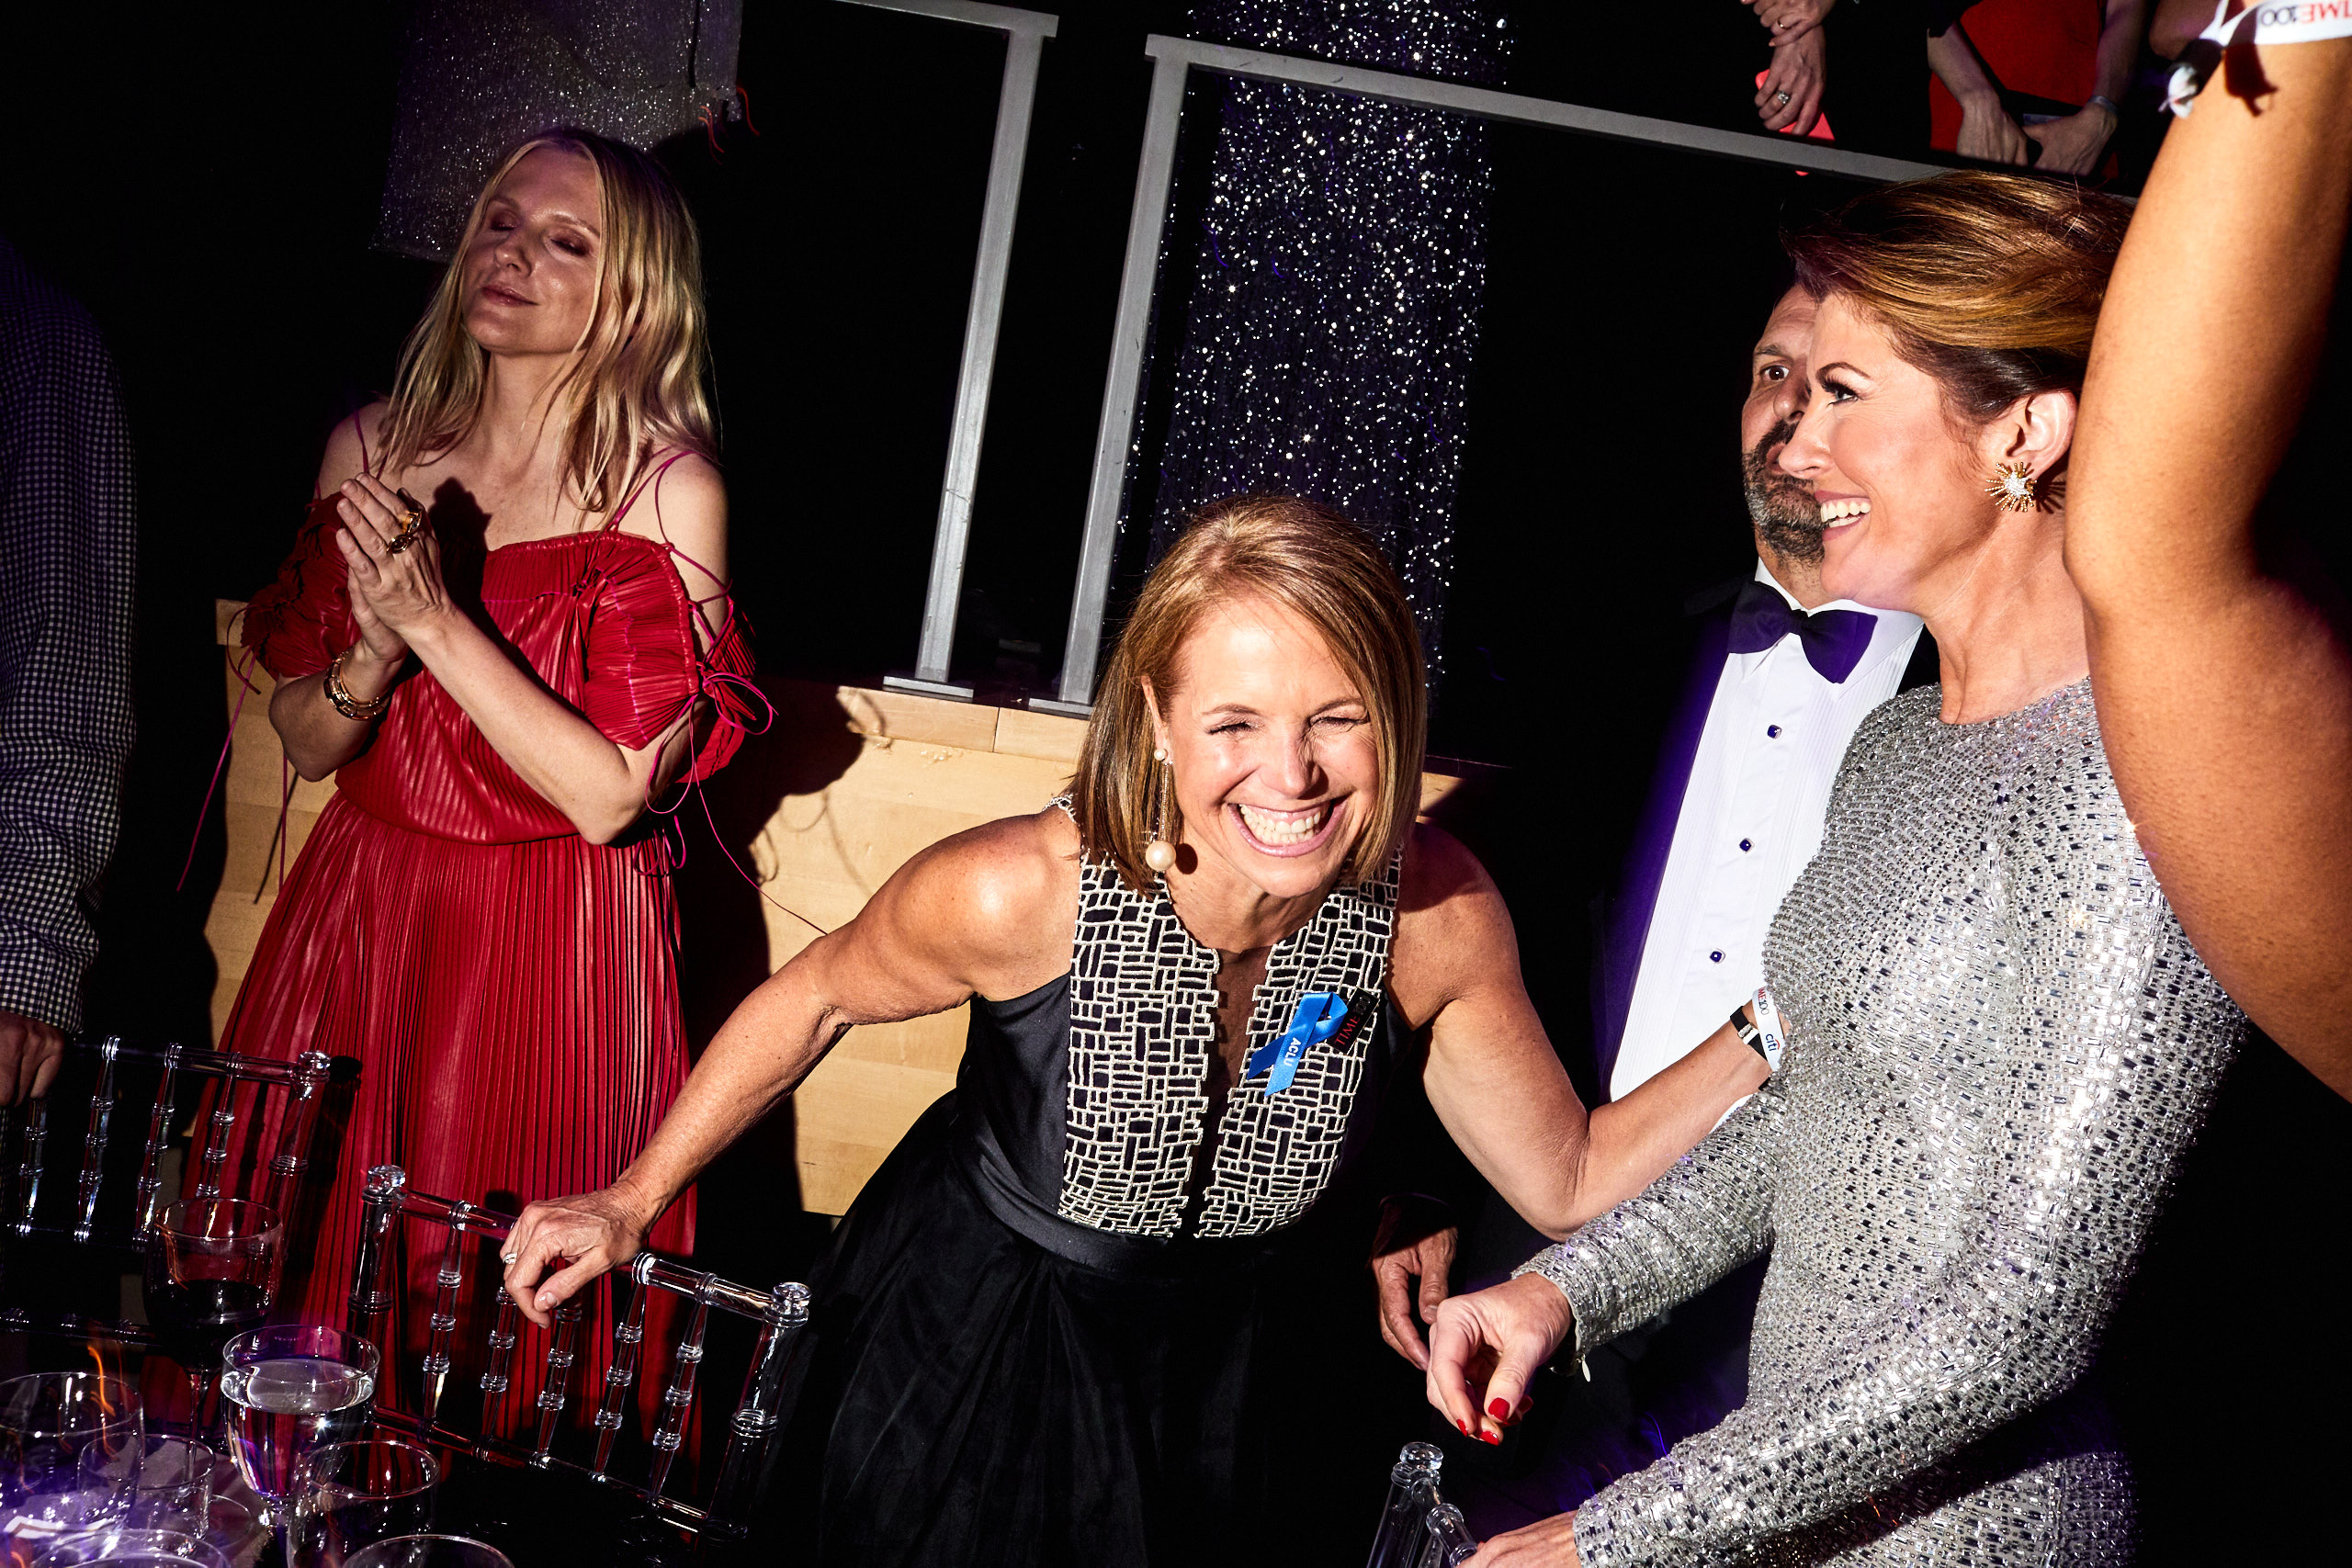 Katie Couric (middle) at the Time 100 Gala at Jazz at Lincoln Center on April 25, 2017 in New York City.